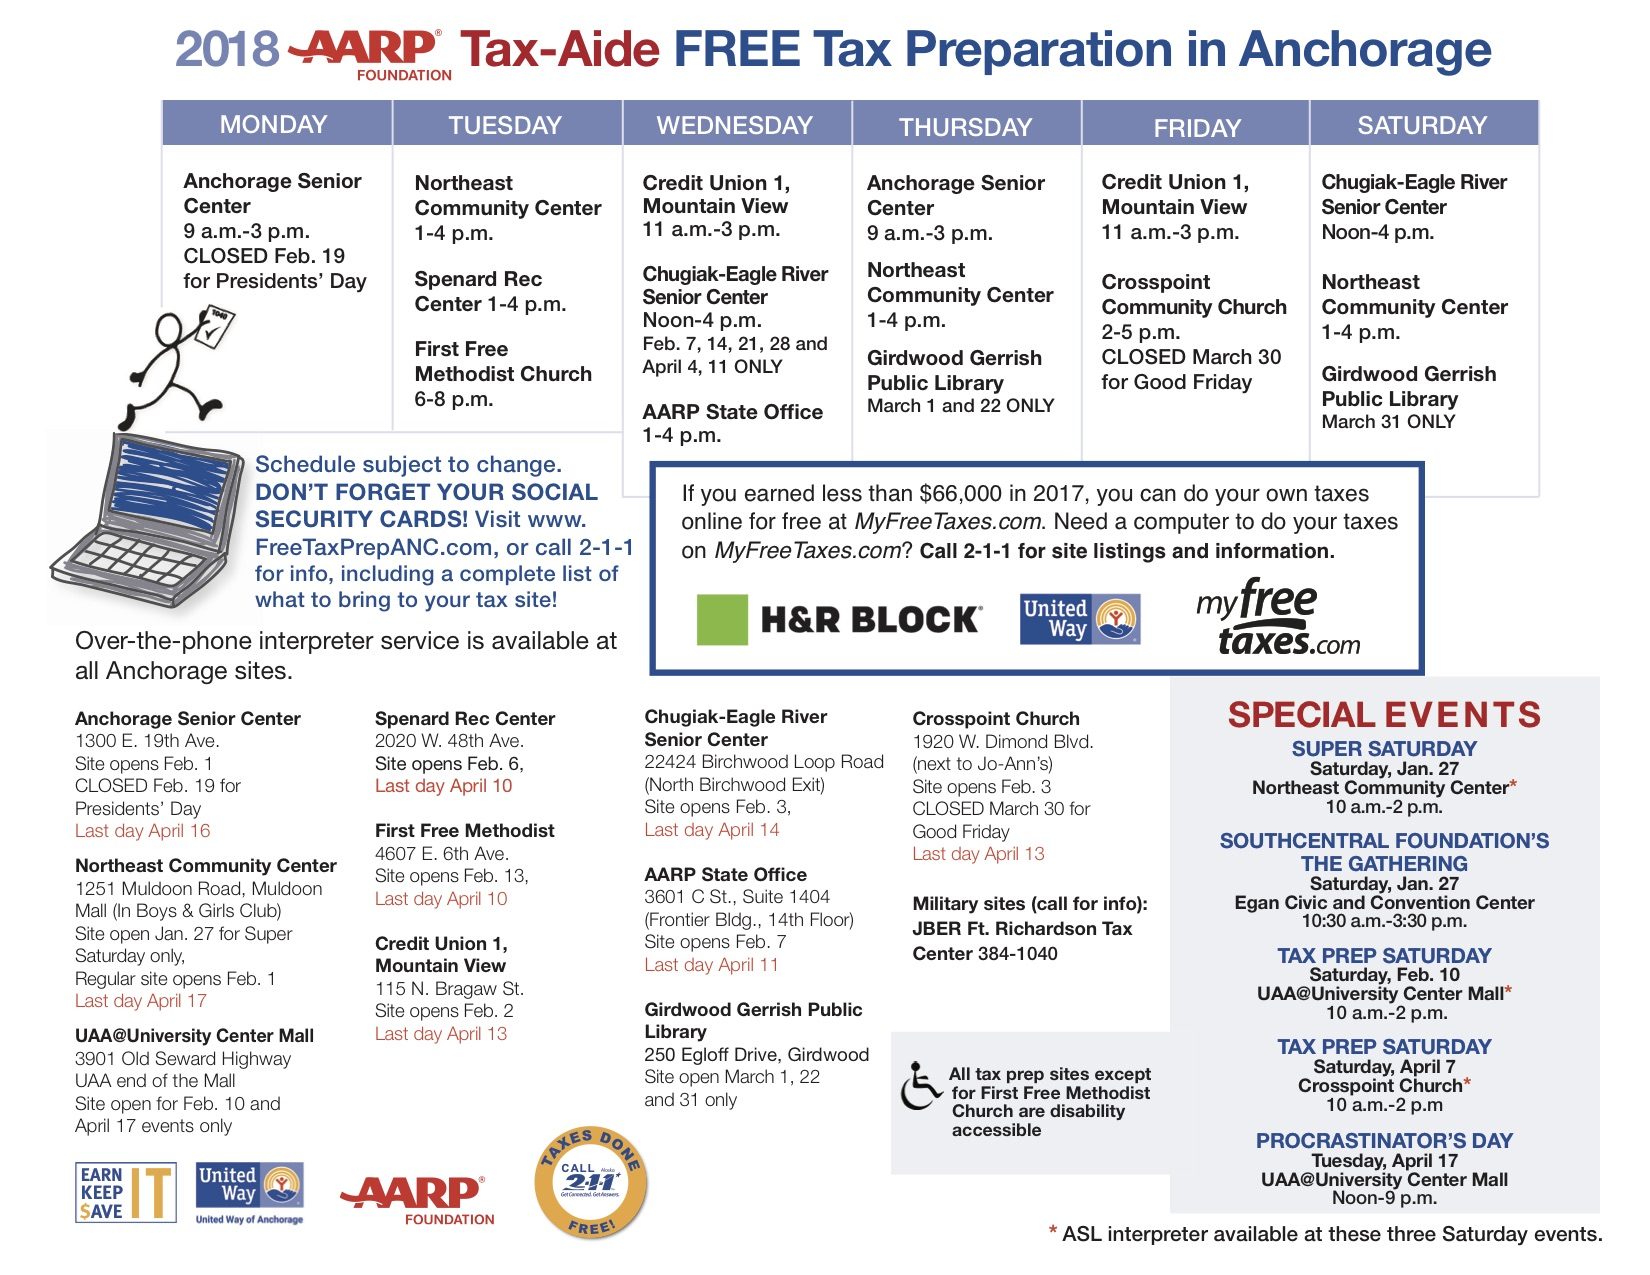 free tax prep sites | free tax preparation in anchorage